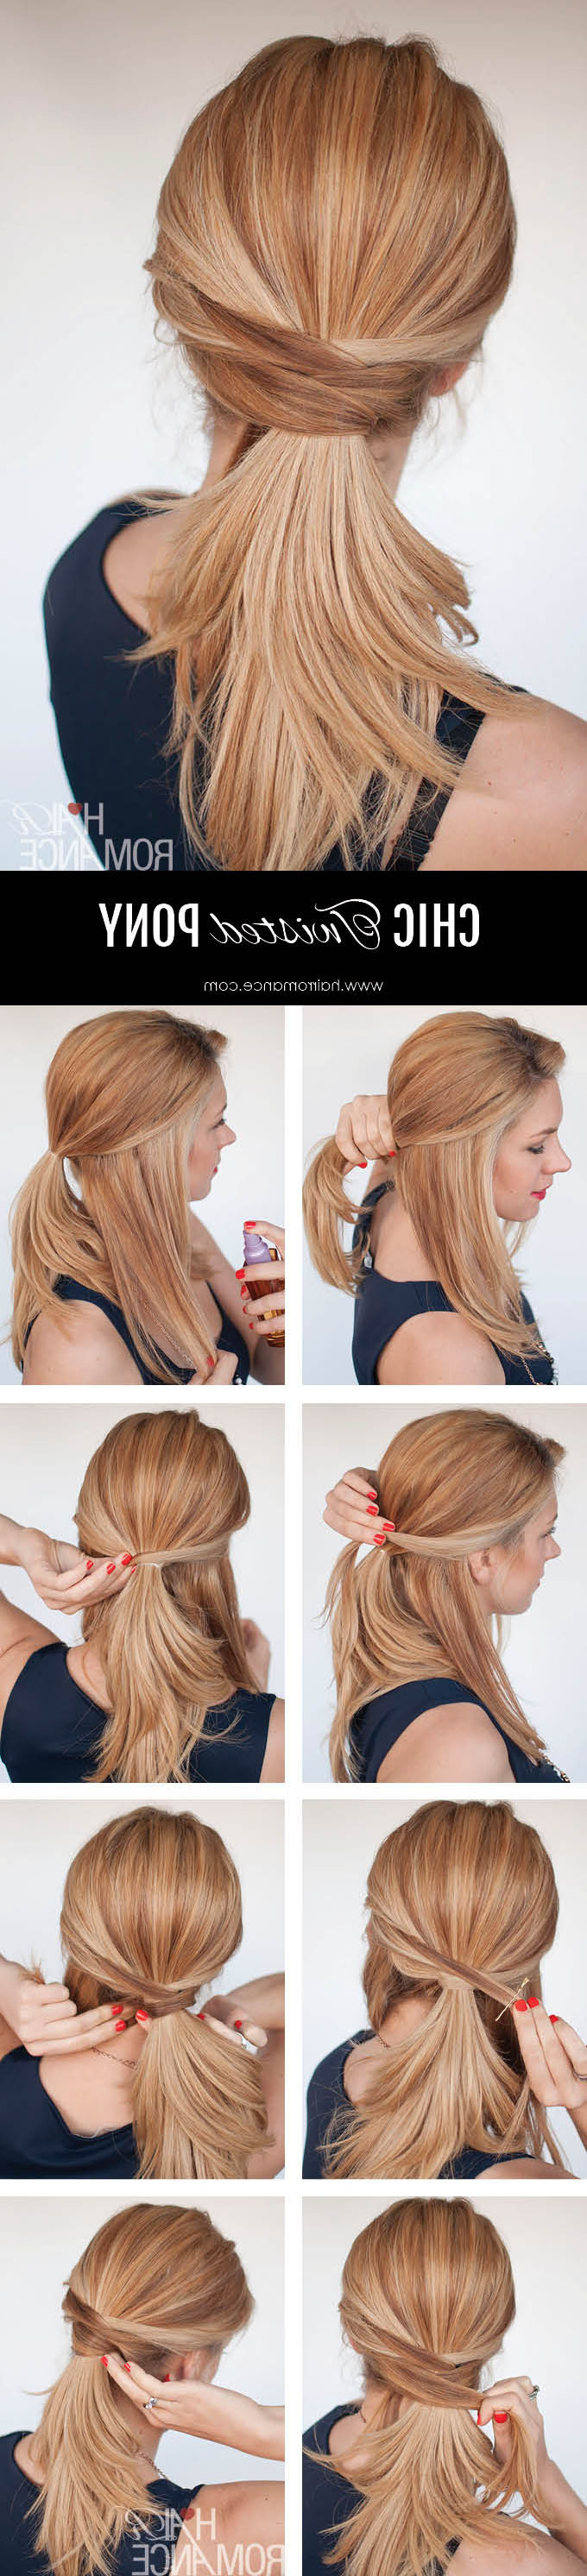 Well Known Chic Ponytail Hairstyles Ponytail Hairstyles For 3 Chic Ponytail Tutorials To Lift Your Everyday Hair Game – Hair Romance (View 9 of 20)